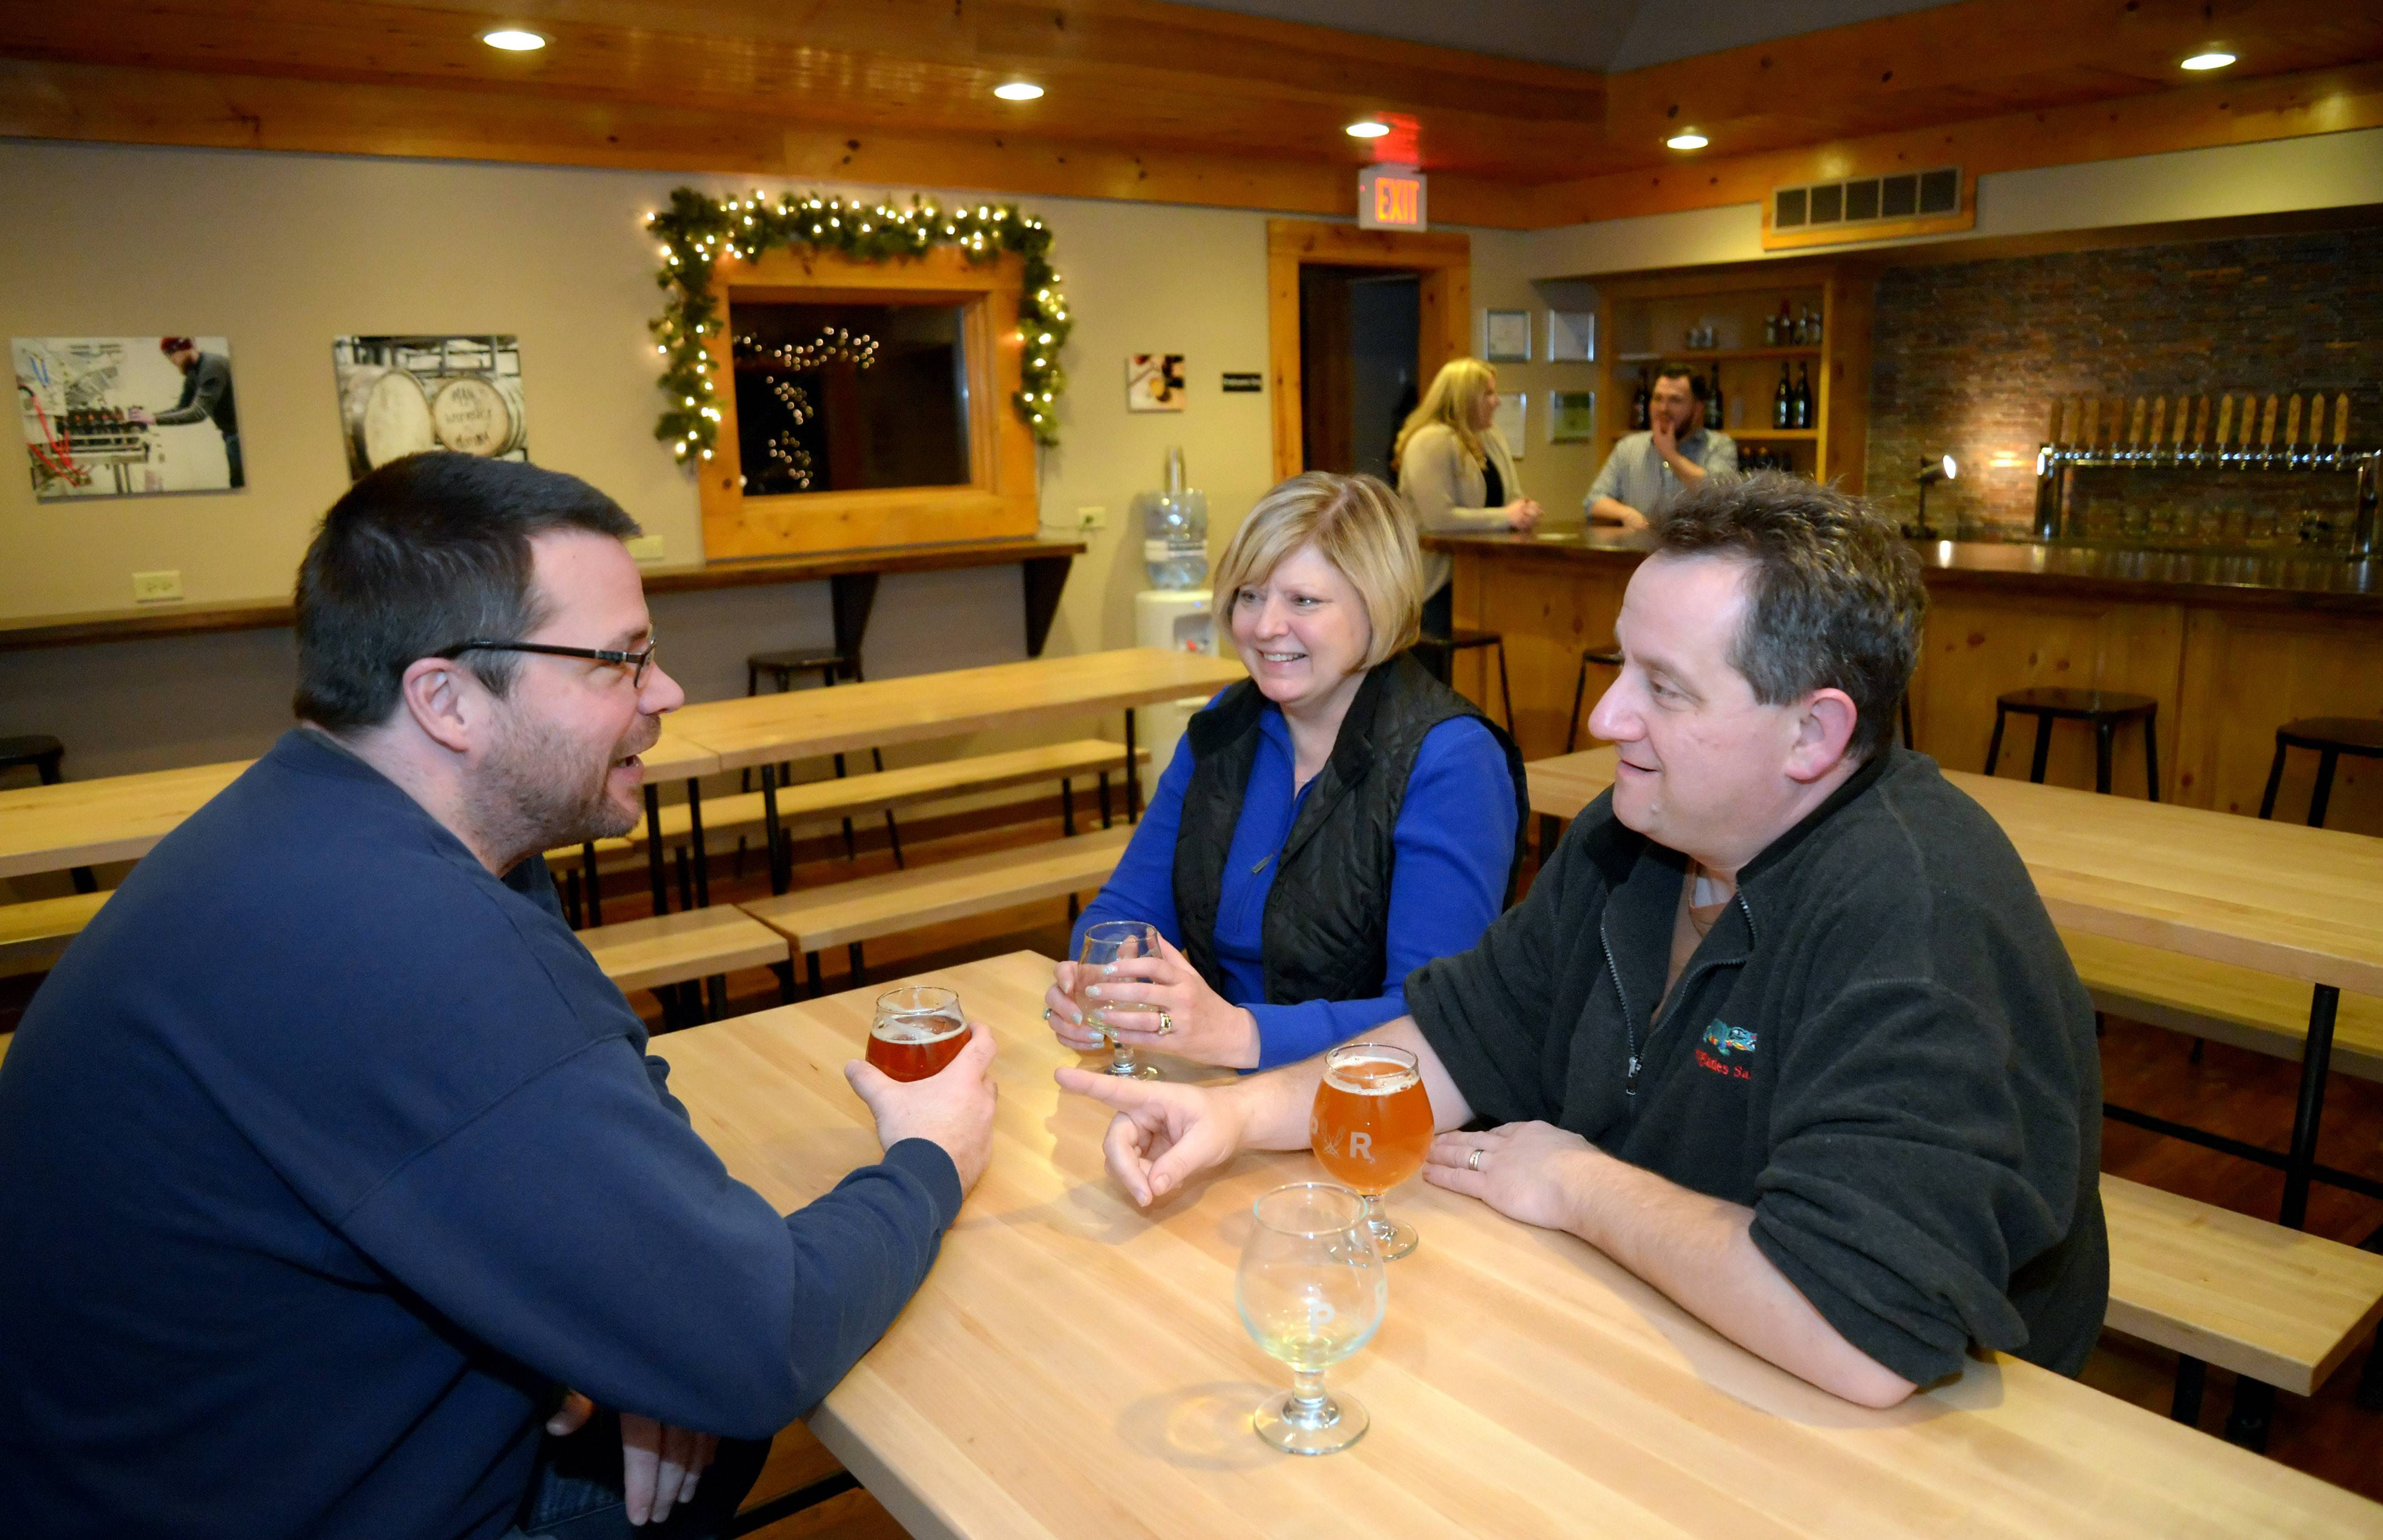 Patrons enjoy the Plank Road Tap Room in Elgin. The rustic spot for beer lovers opens at 1 p.m. on Black Friday.